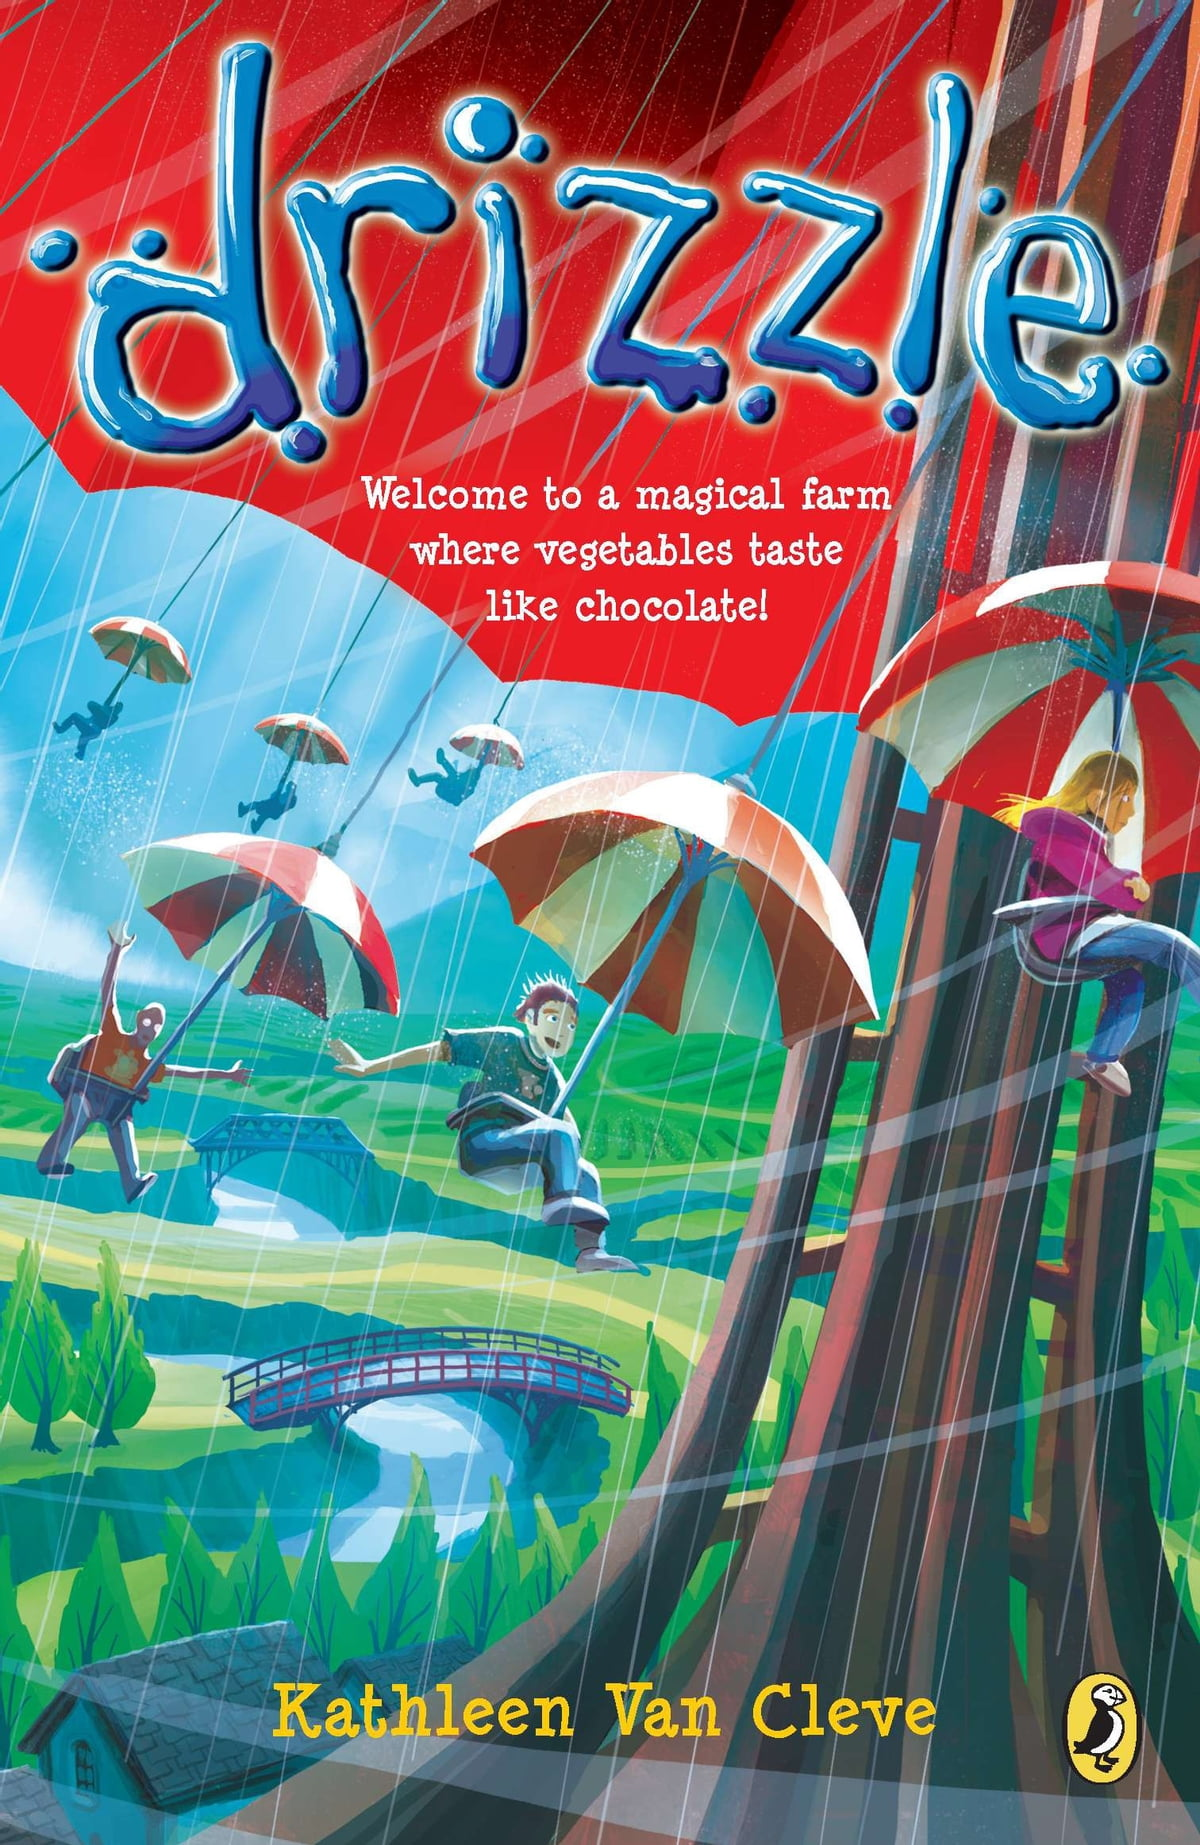 Read Drizzle By Kathleen Van Cleve